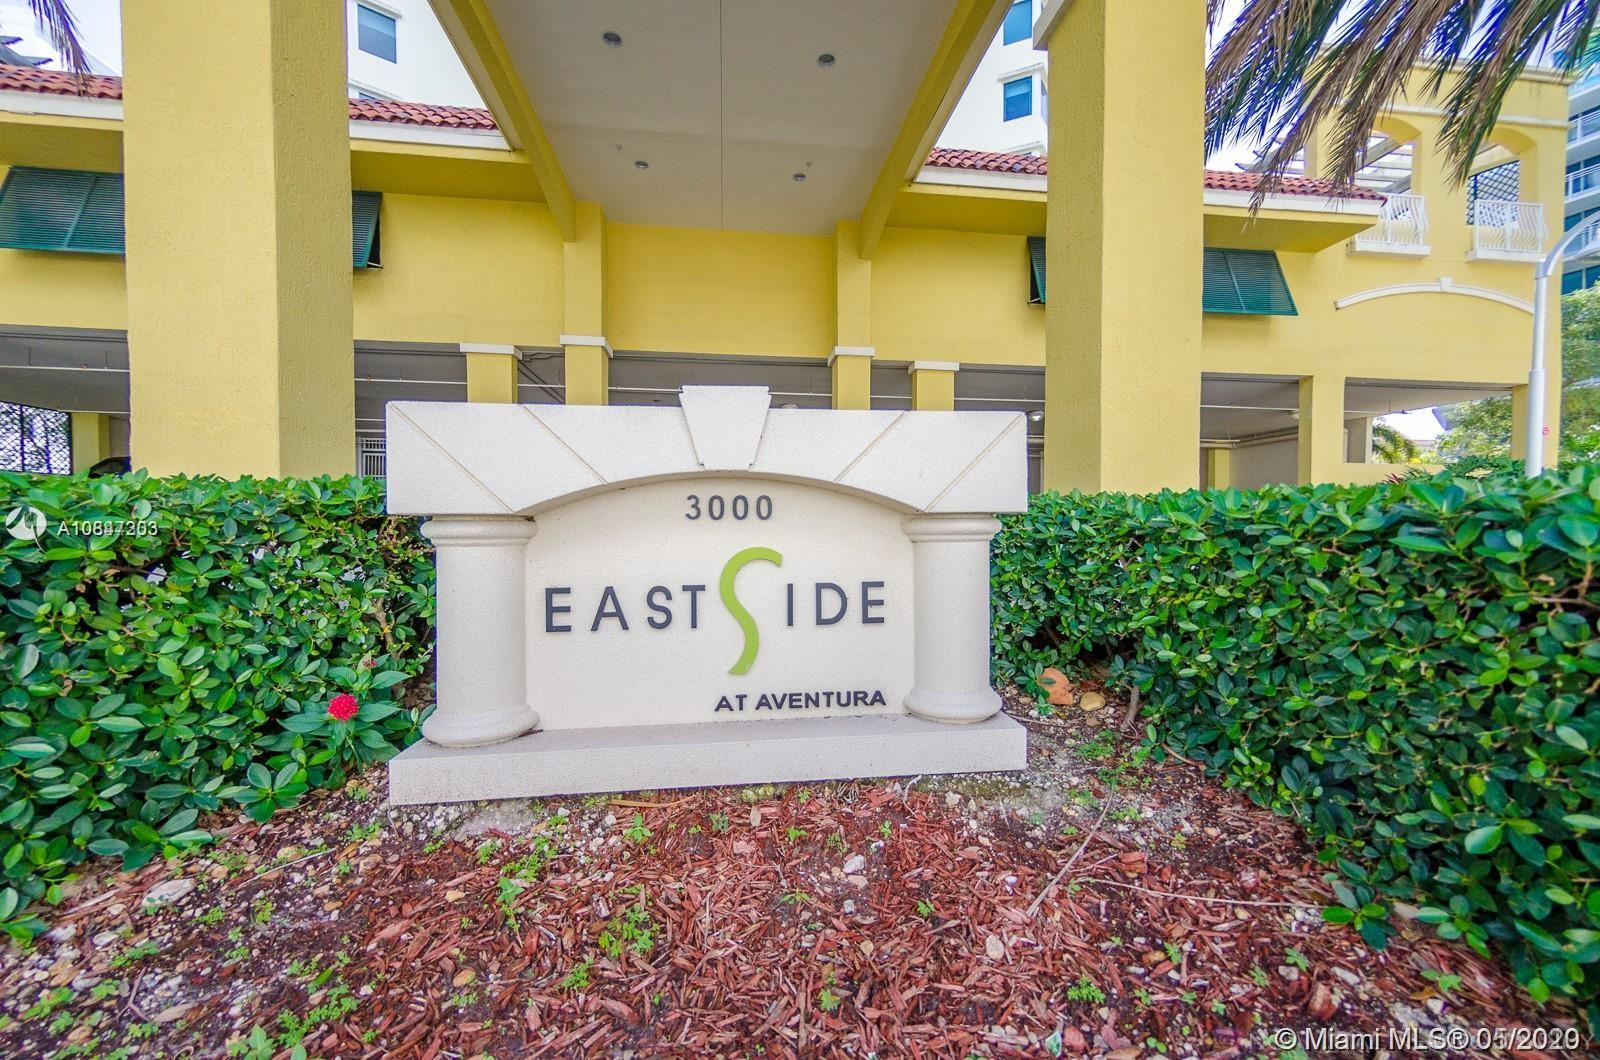 Eastside at Aventura #507 - 3000 NE 188 #507, Aventura, FL 33180